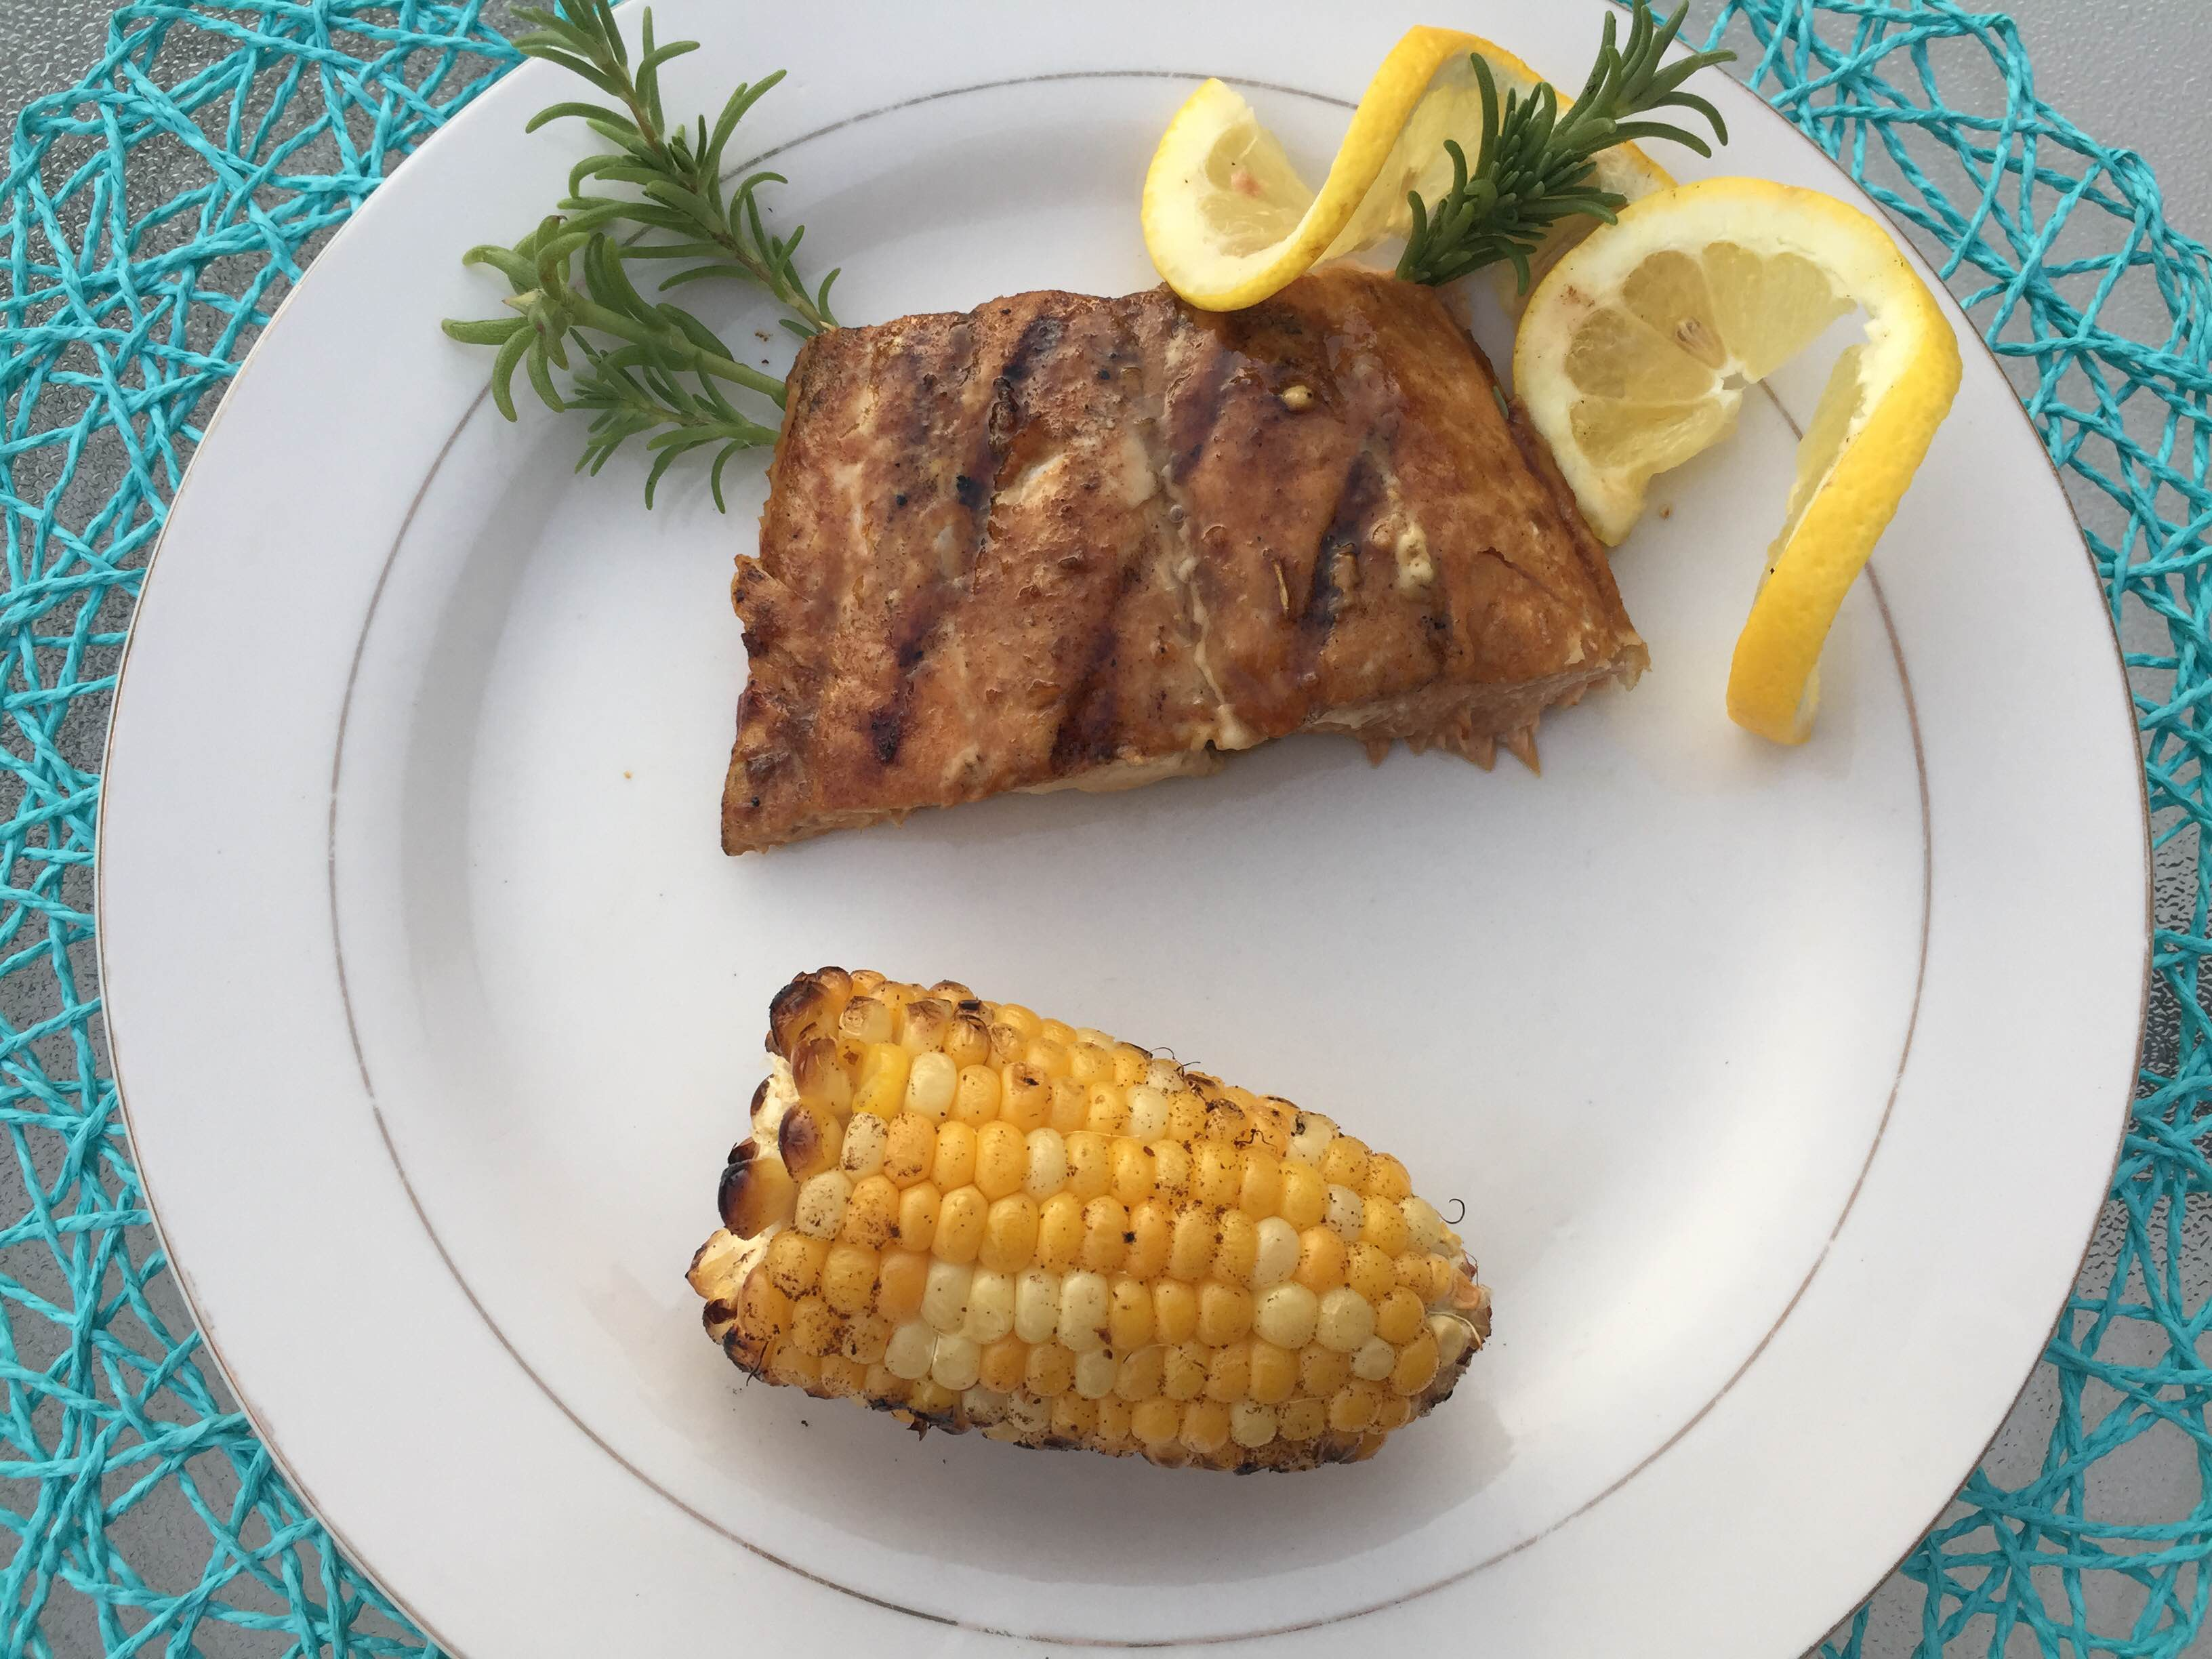 barbecued salmon on a white plate, with lemon slices and herbs